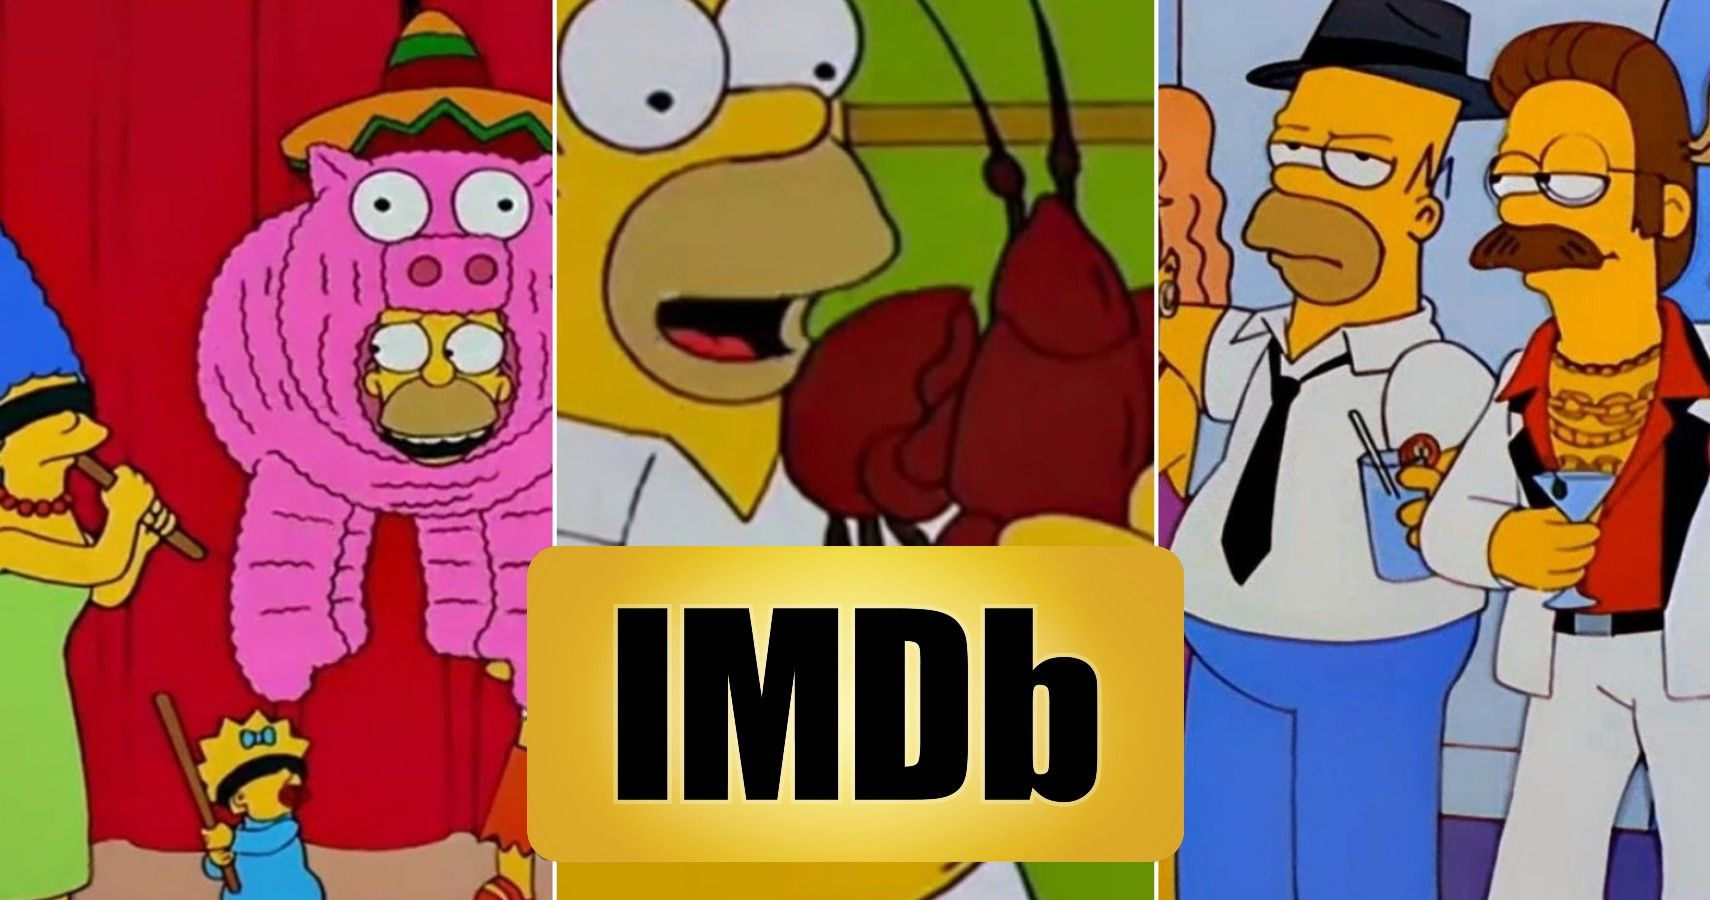 The Simpsons 10 Best Episodes Of Season 10 Ranked According To Imdb